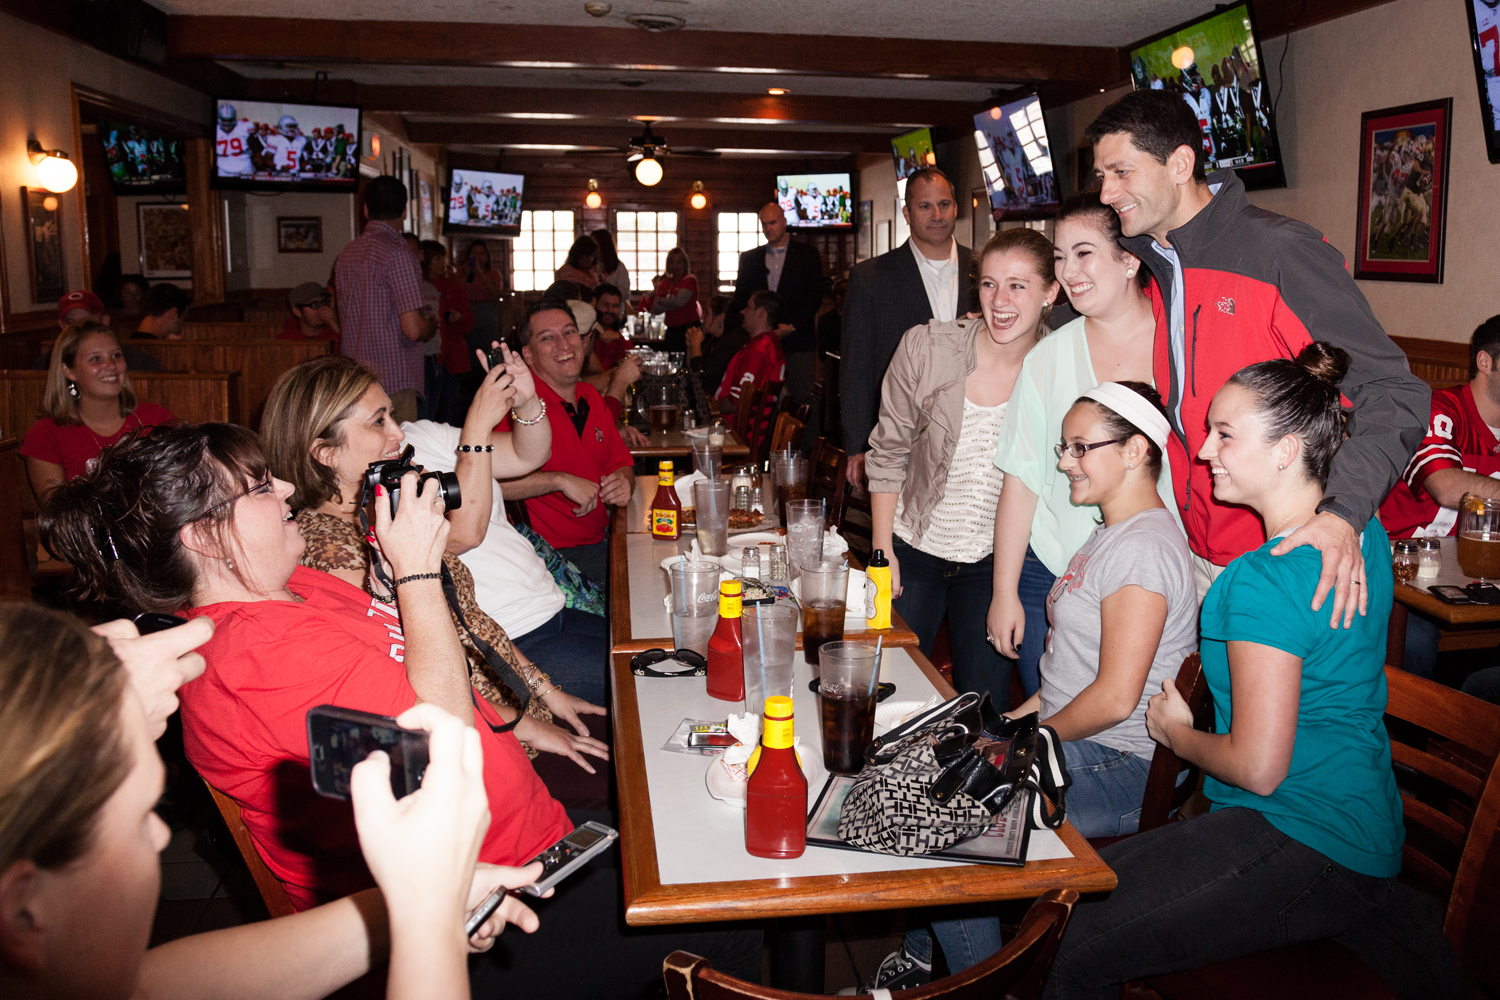 Paul Ryan poses for a picture with Ohio State fans at the Varsity Club, a sports bar in Colombus, Ohio. Sept. 29, 2012.